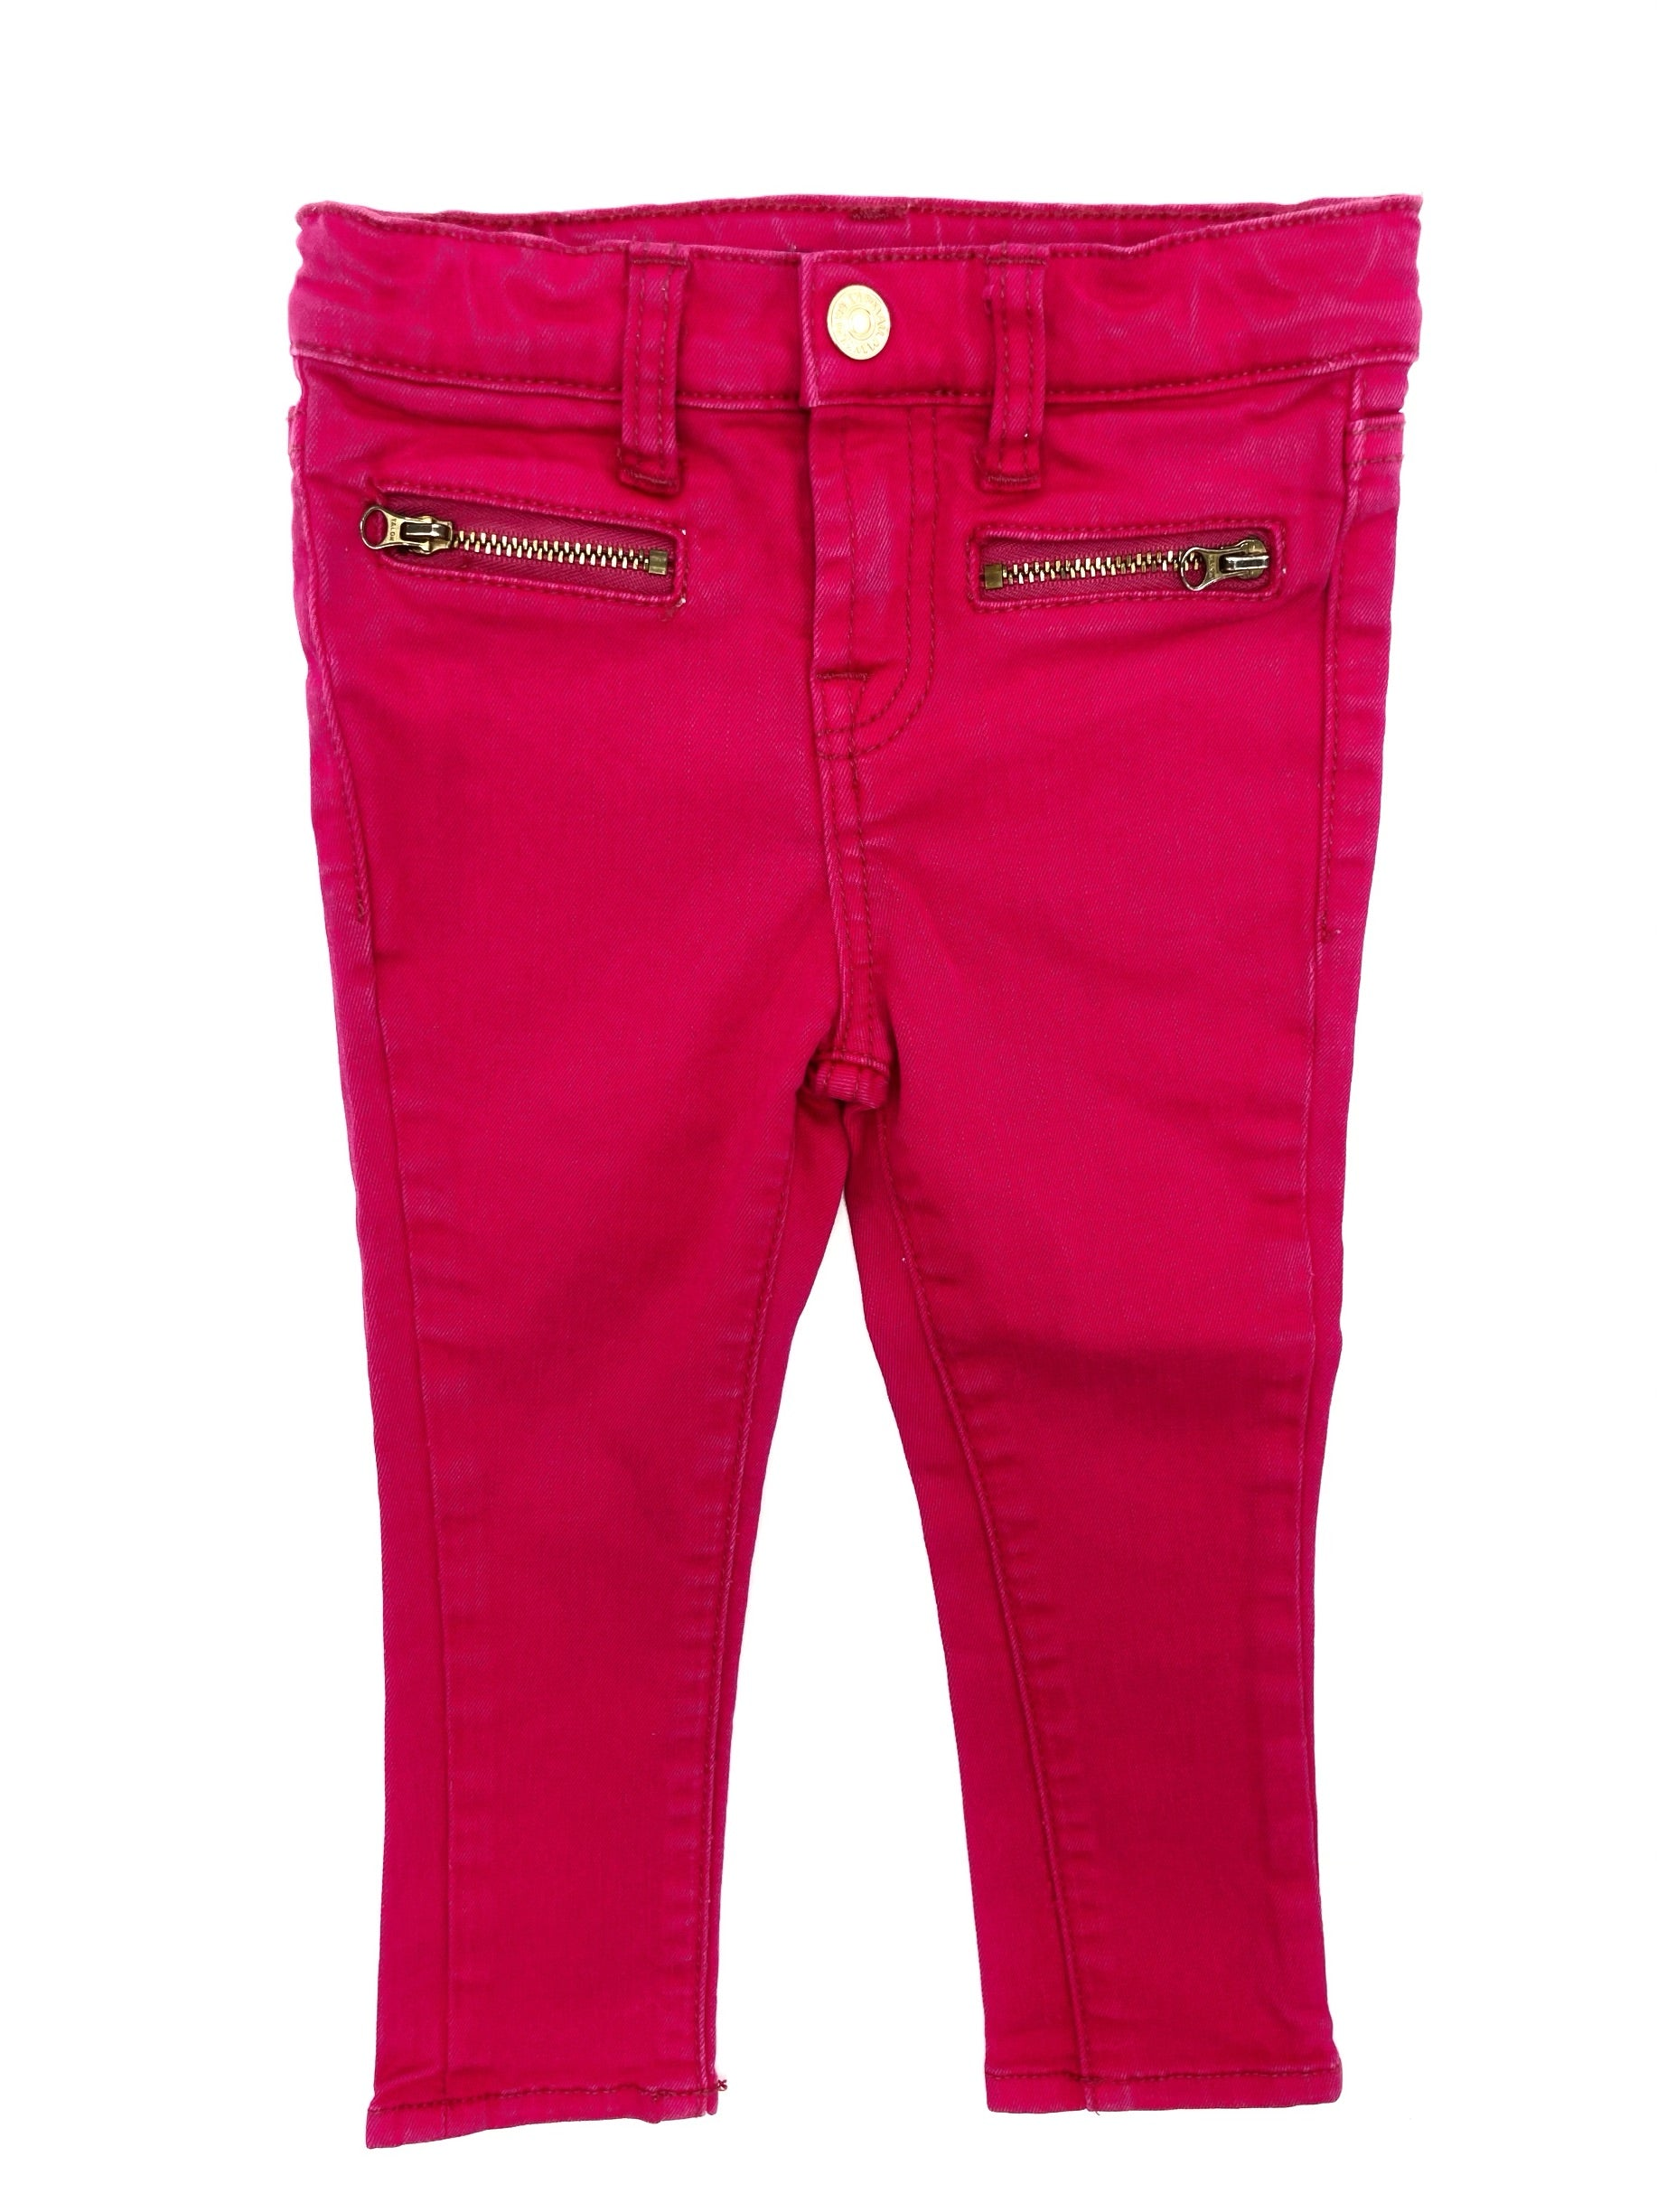 7 for all Mankind Jeans - 2T